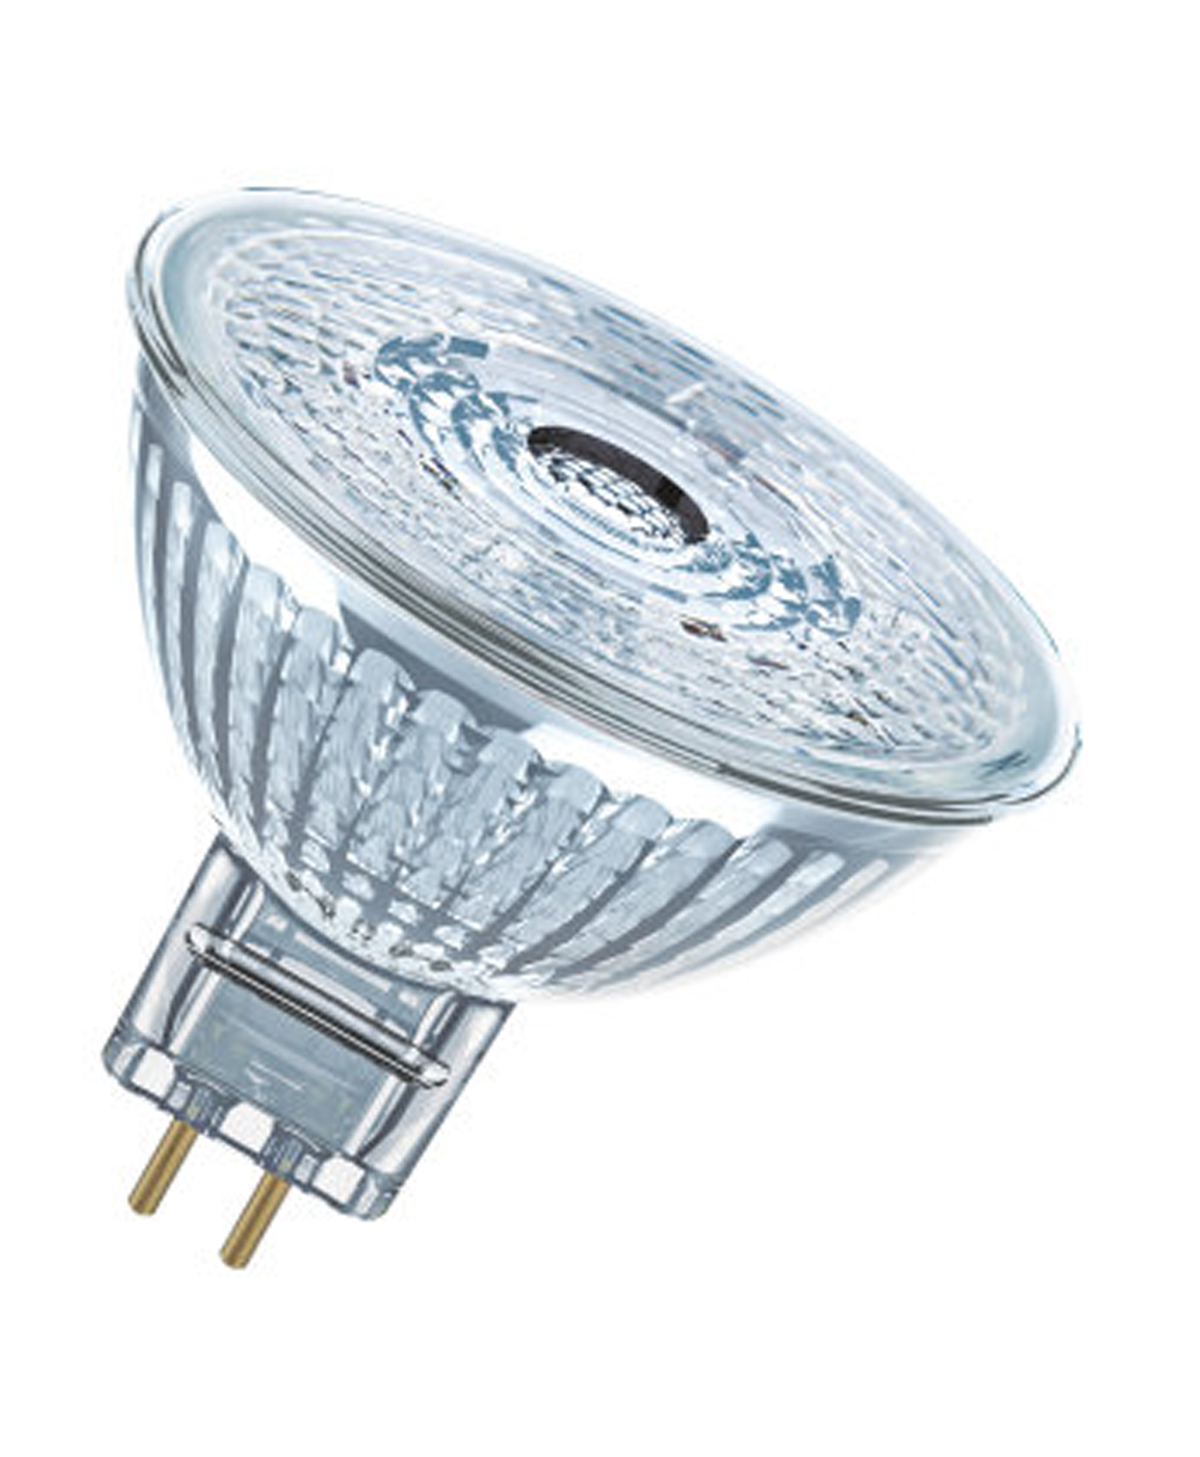 Spot Dimmbar 3 Osram Parathom Dim Mr16 Led Gu5.3 5w=35w 350lm 36° Warm